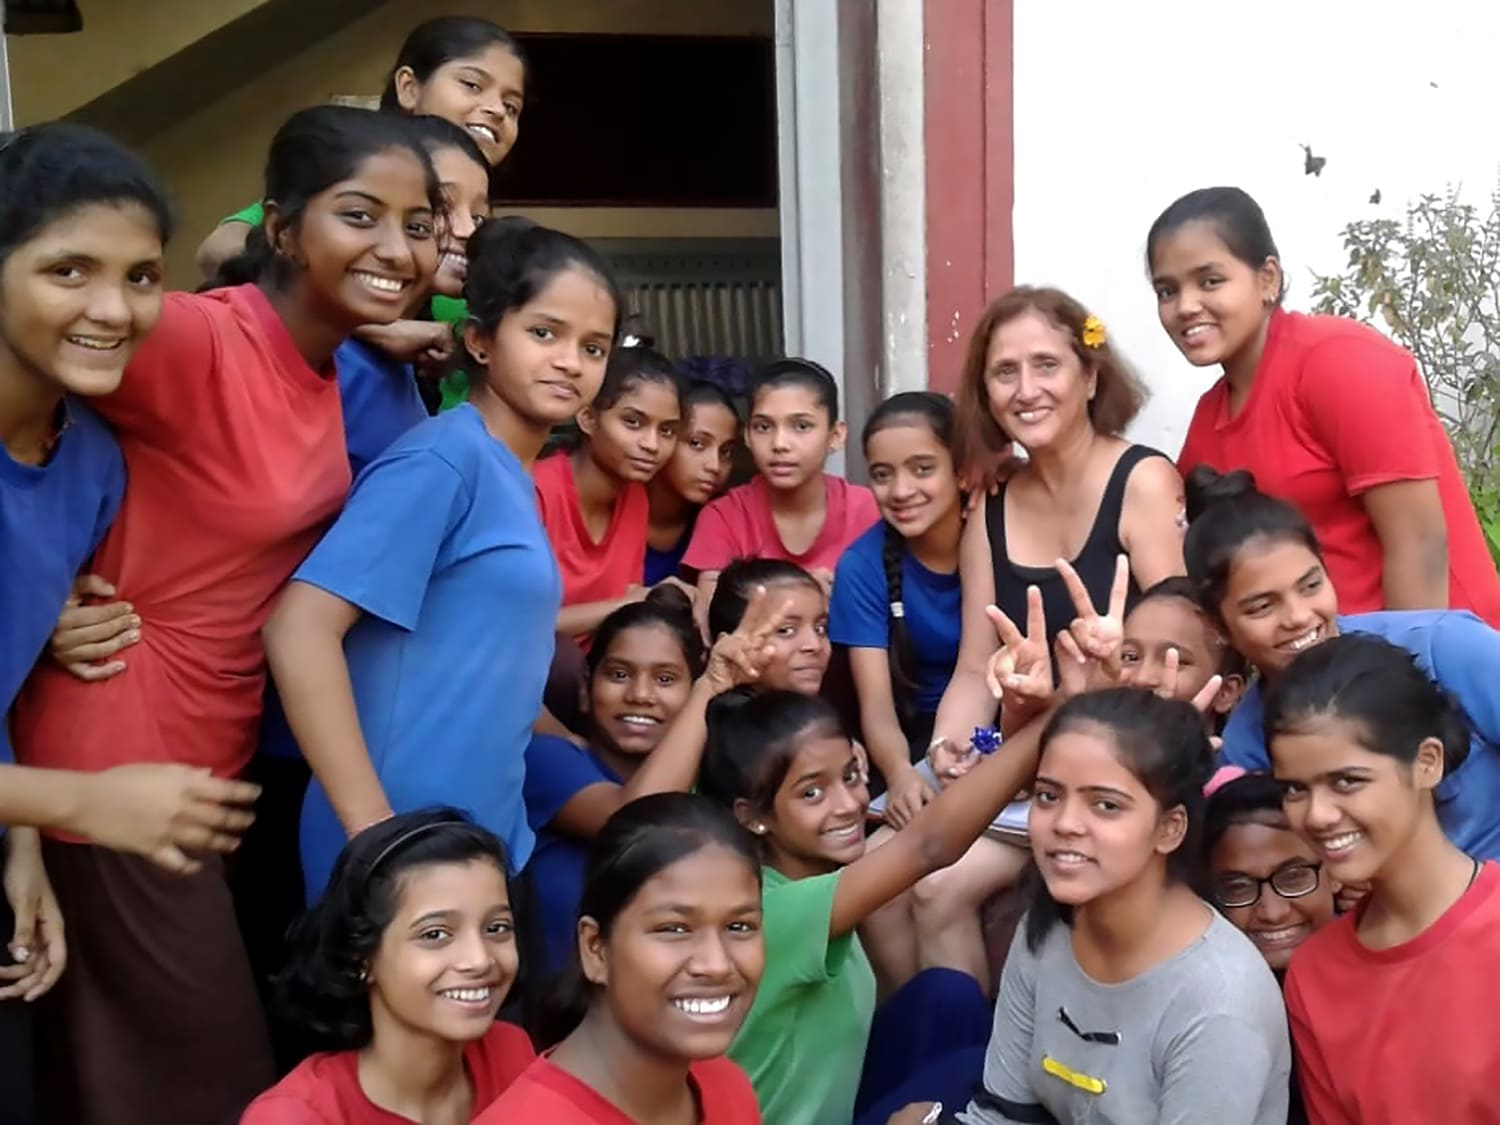 Support a cause - Sponsor fresh milk for 82 girls